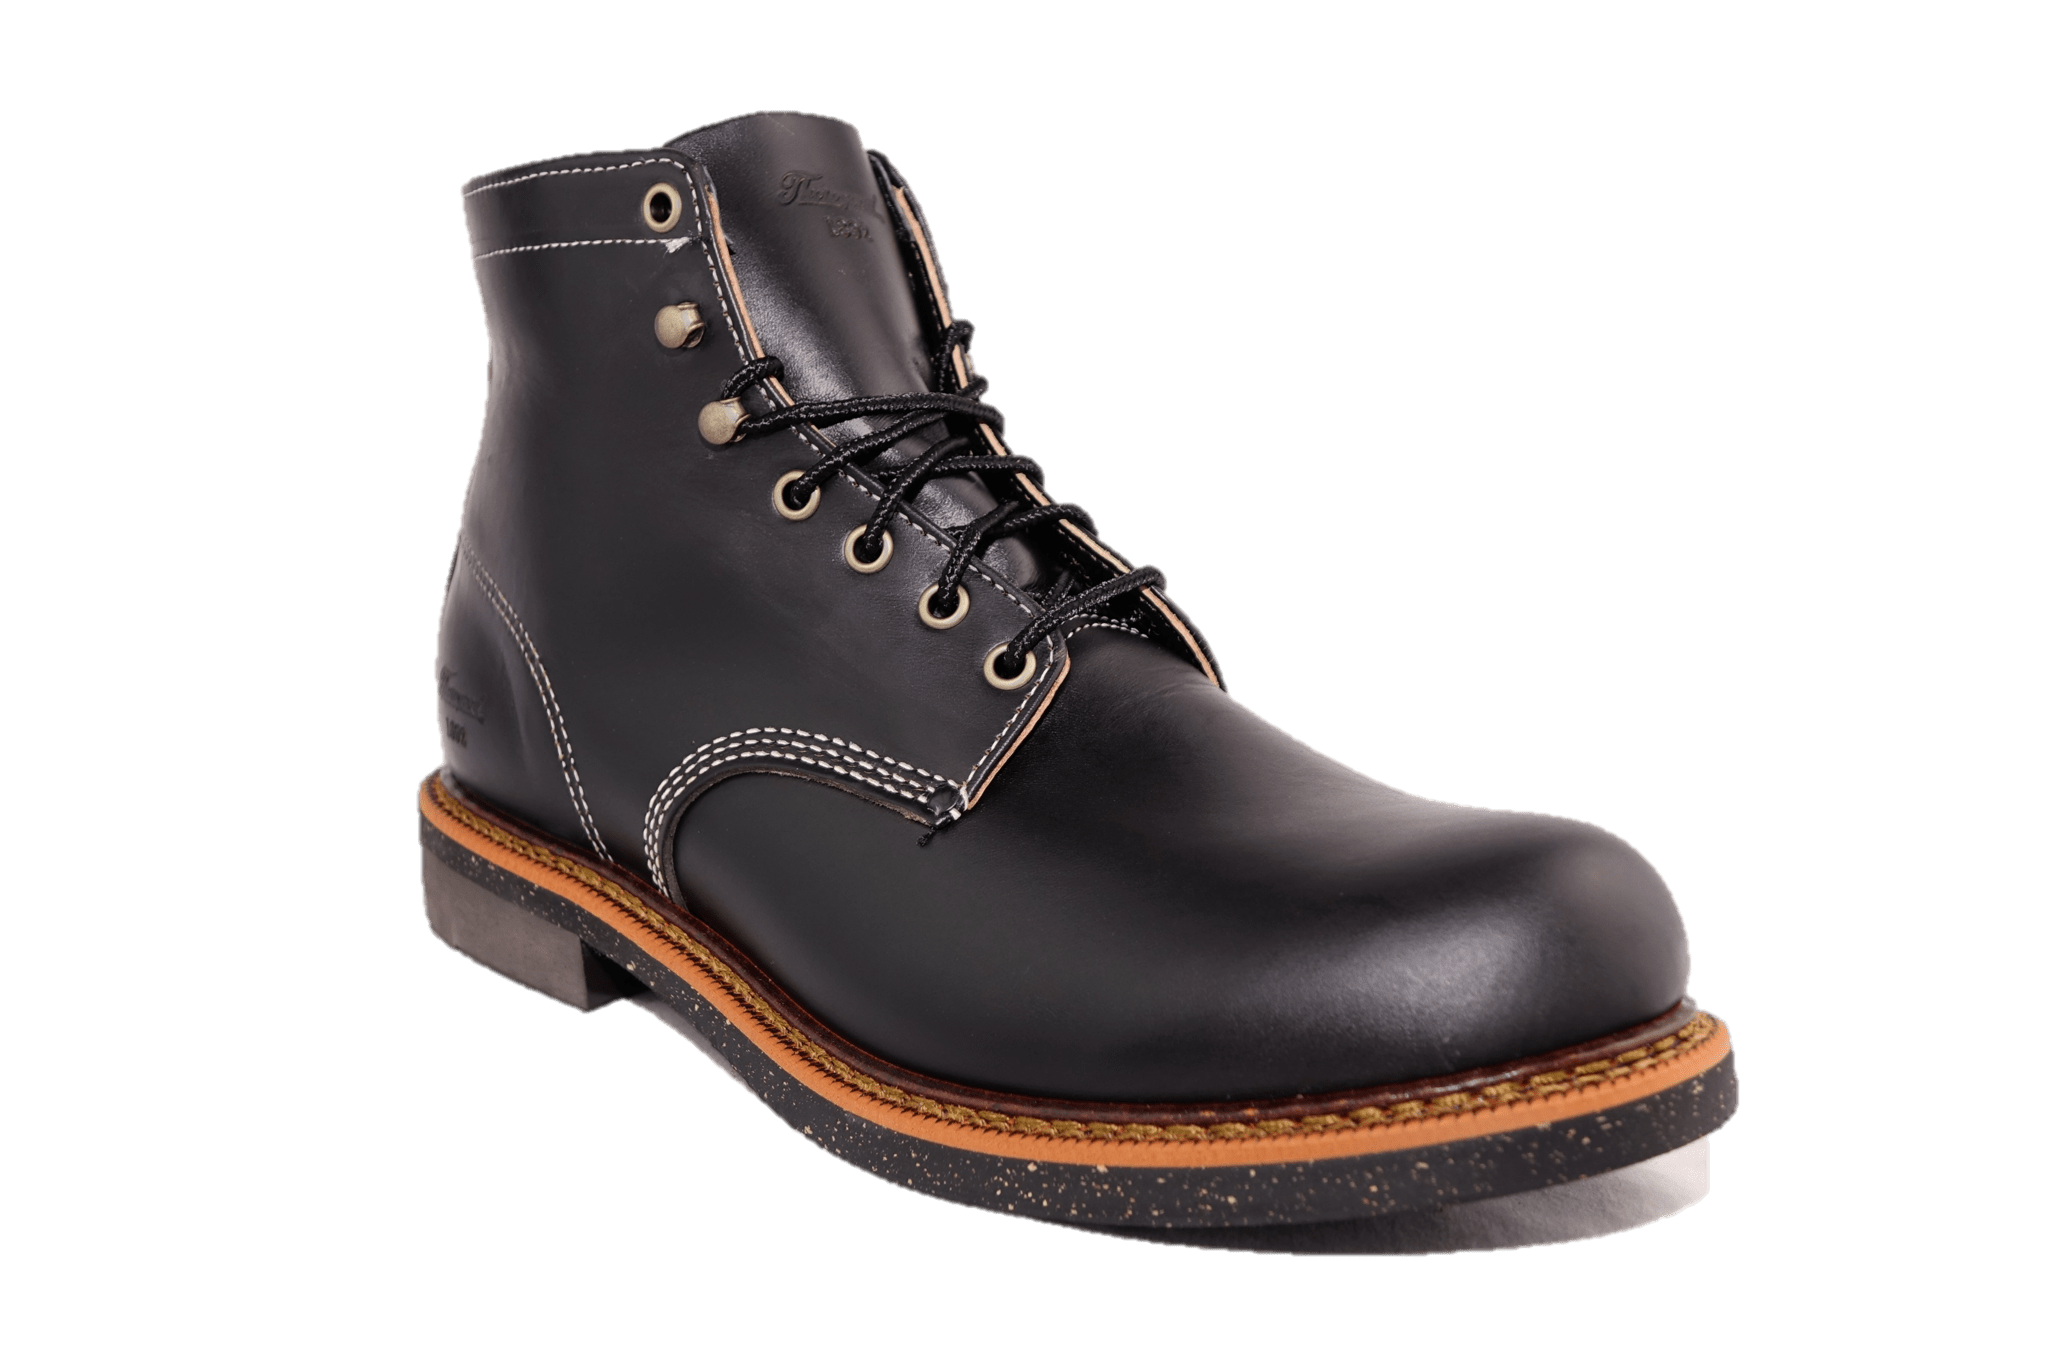 9215d1141b1 Thorogood Boots On Sale